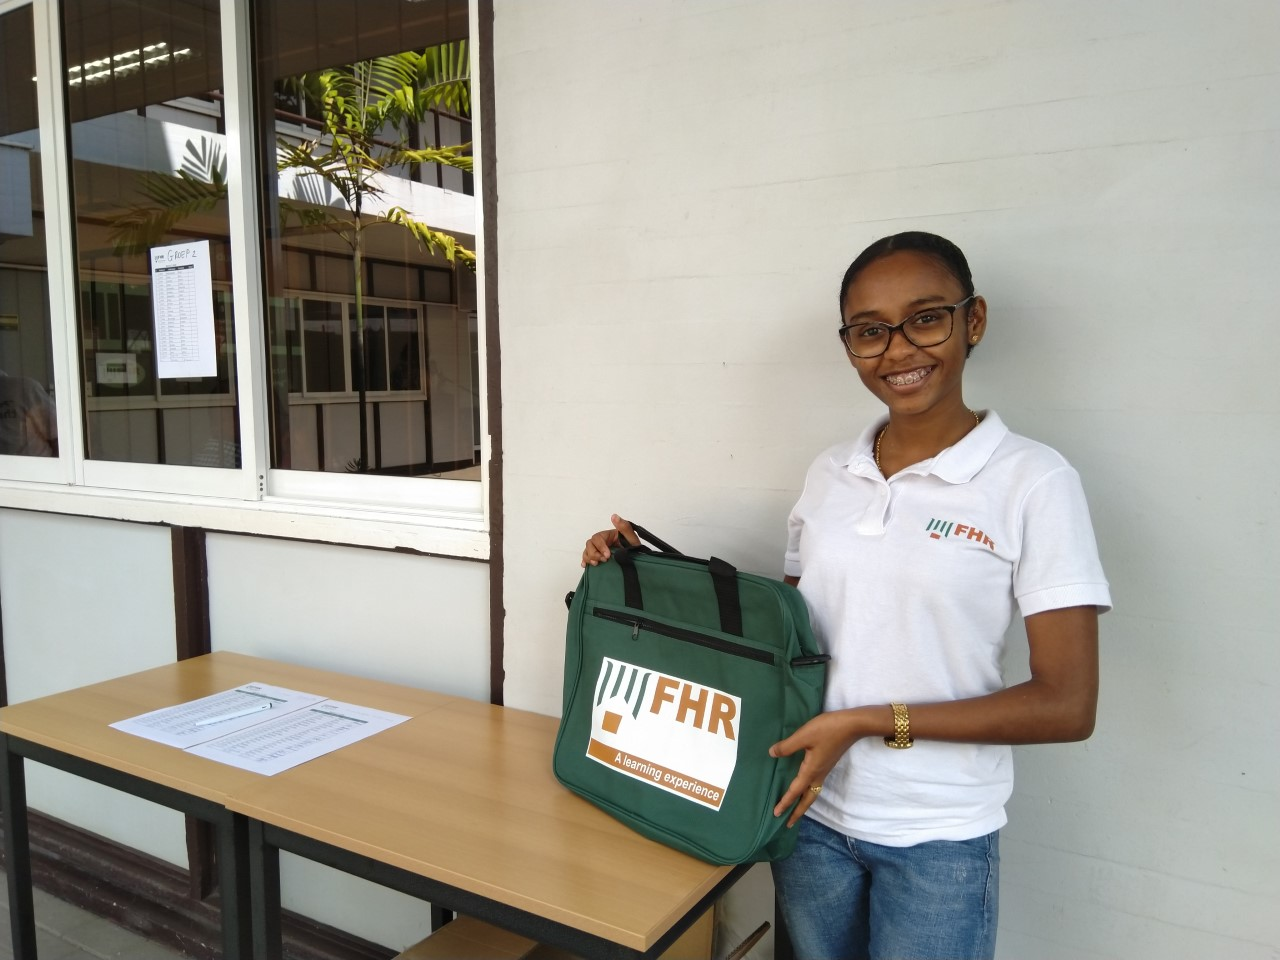 FHR student holding an FHR branded bag